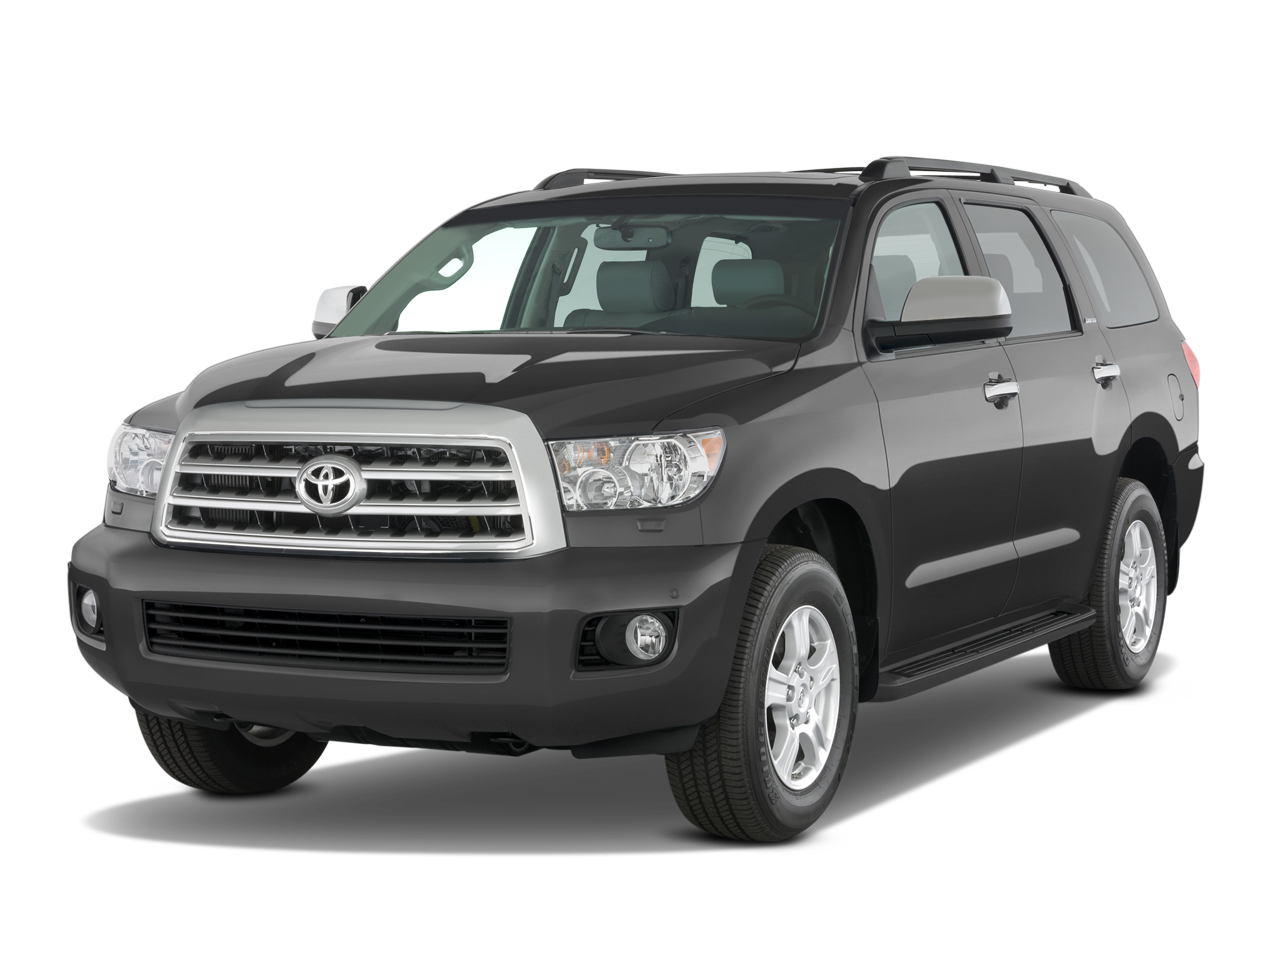 new 2016 toyota sequoia platinum 5 7l v8 w ffv near oak lawn il oak lawn toyota. Black Bedroom Furniture Sets. Home Design Ideas